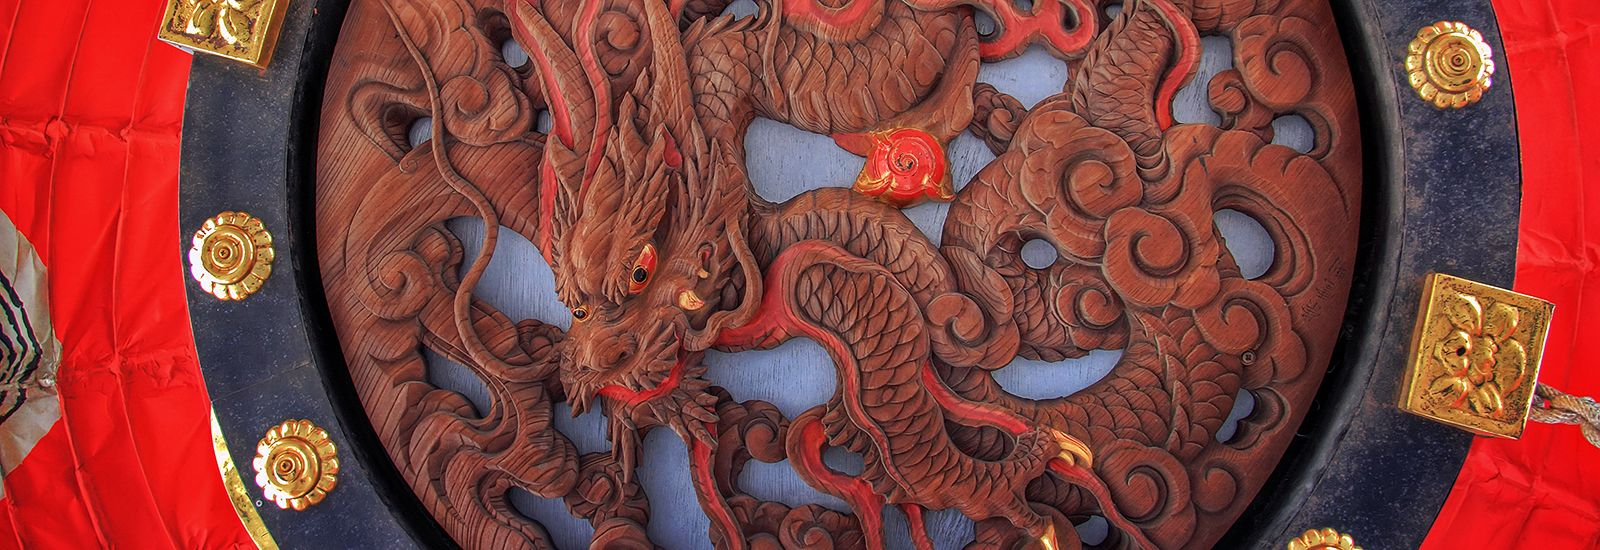 Close up of a wooden carved dragon